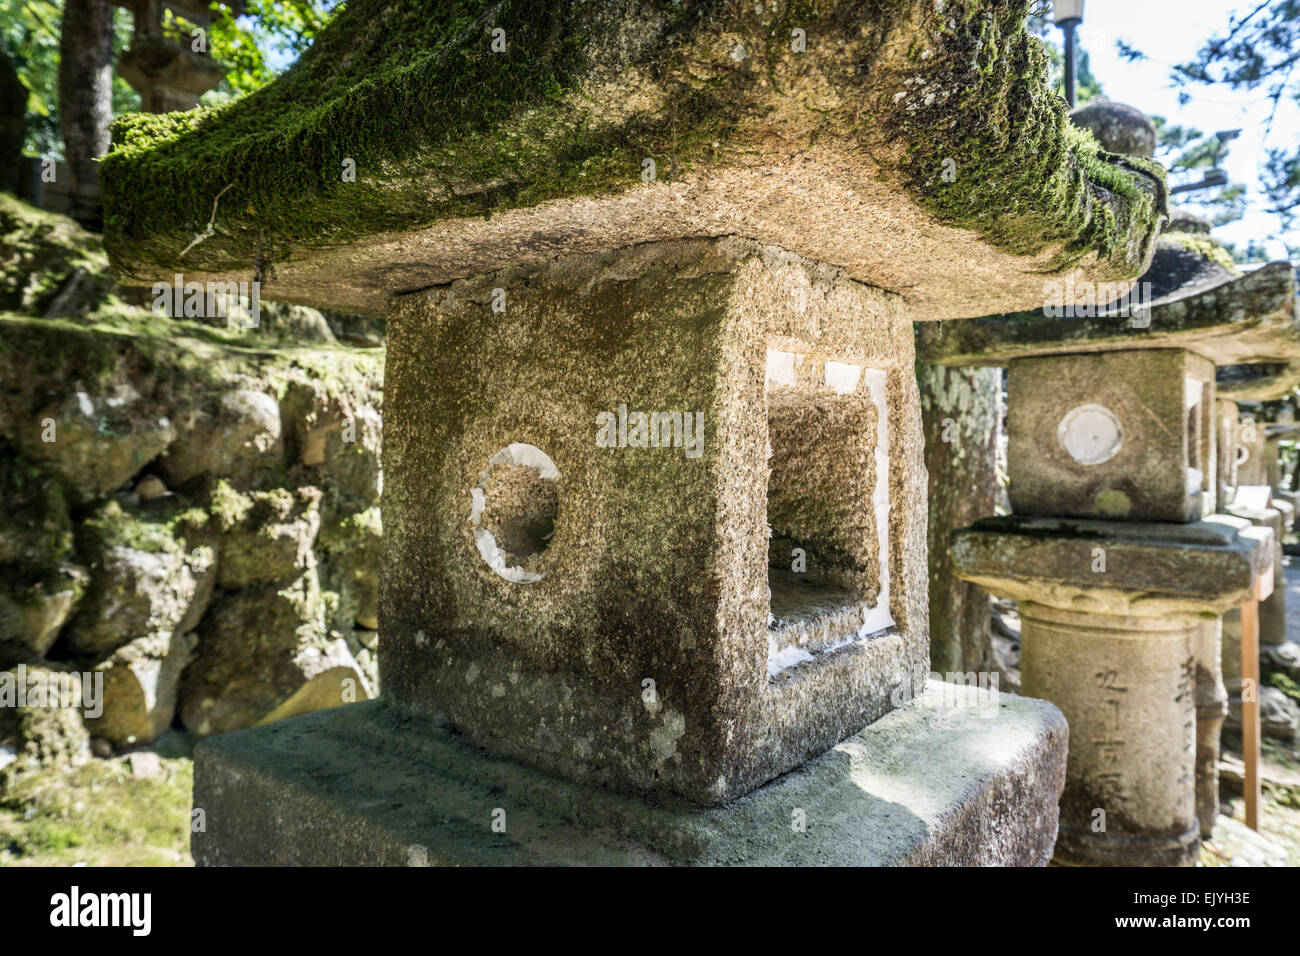 Close up view of two ancient Japanese stone lanterns in the forest near Kasuga Grand Shrine, Nara, Japan - Stock Image